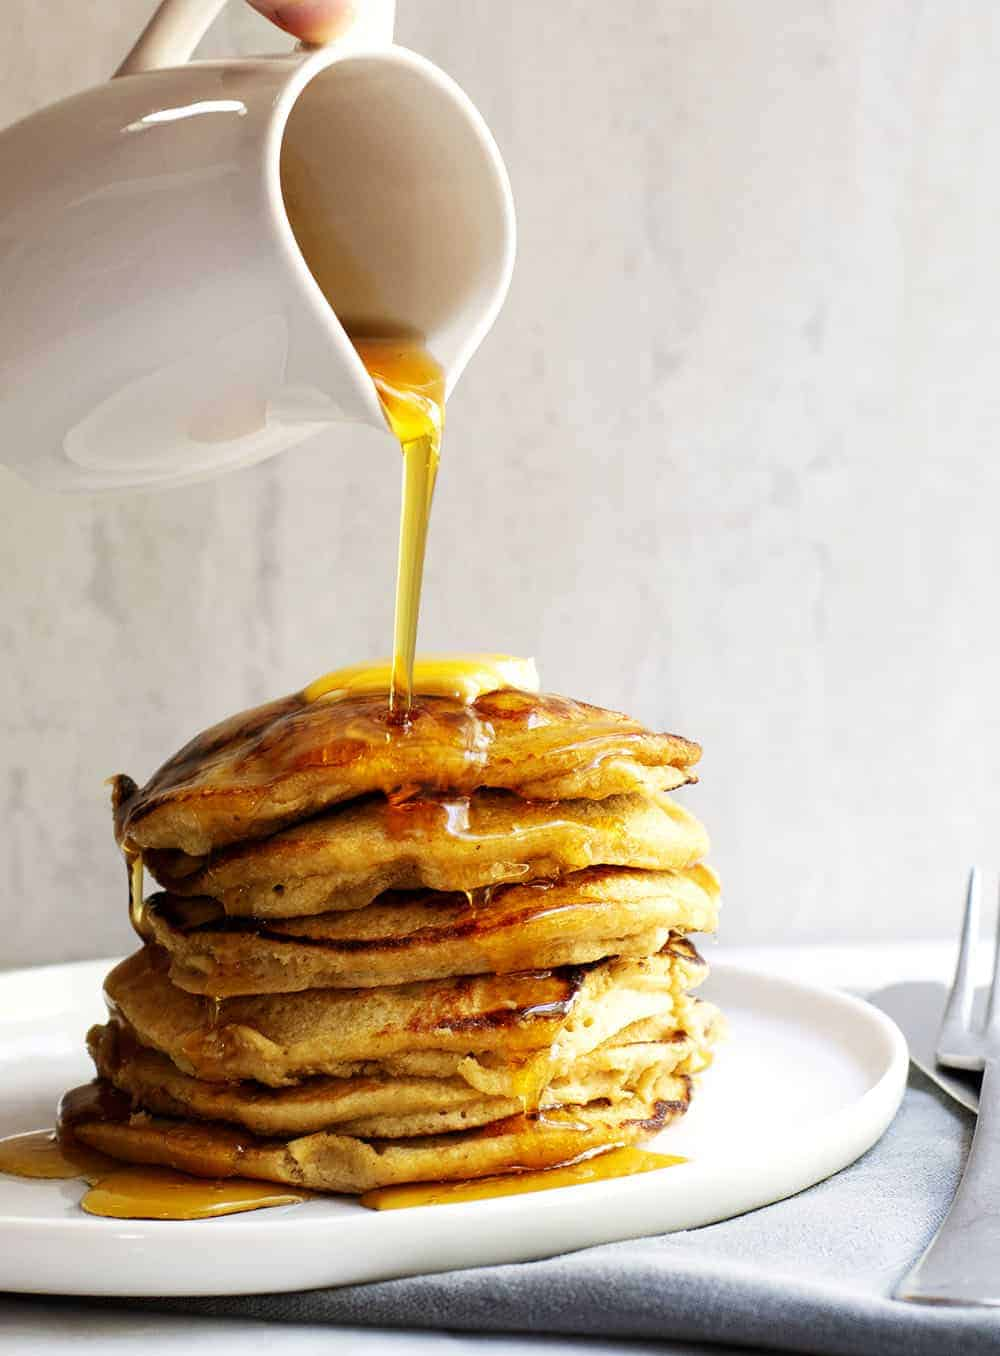 Pouring Syrup over Banana Oatmeal Pancakes